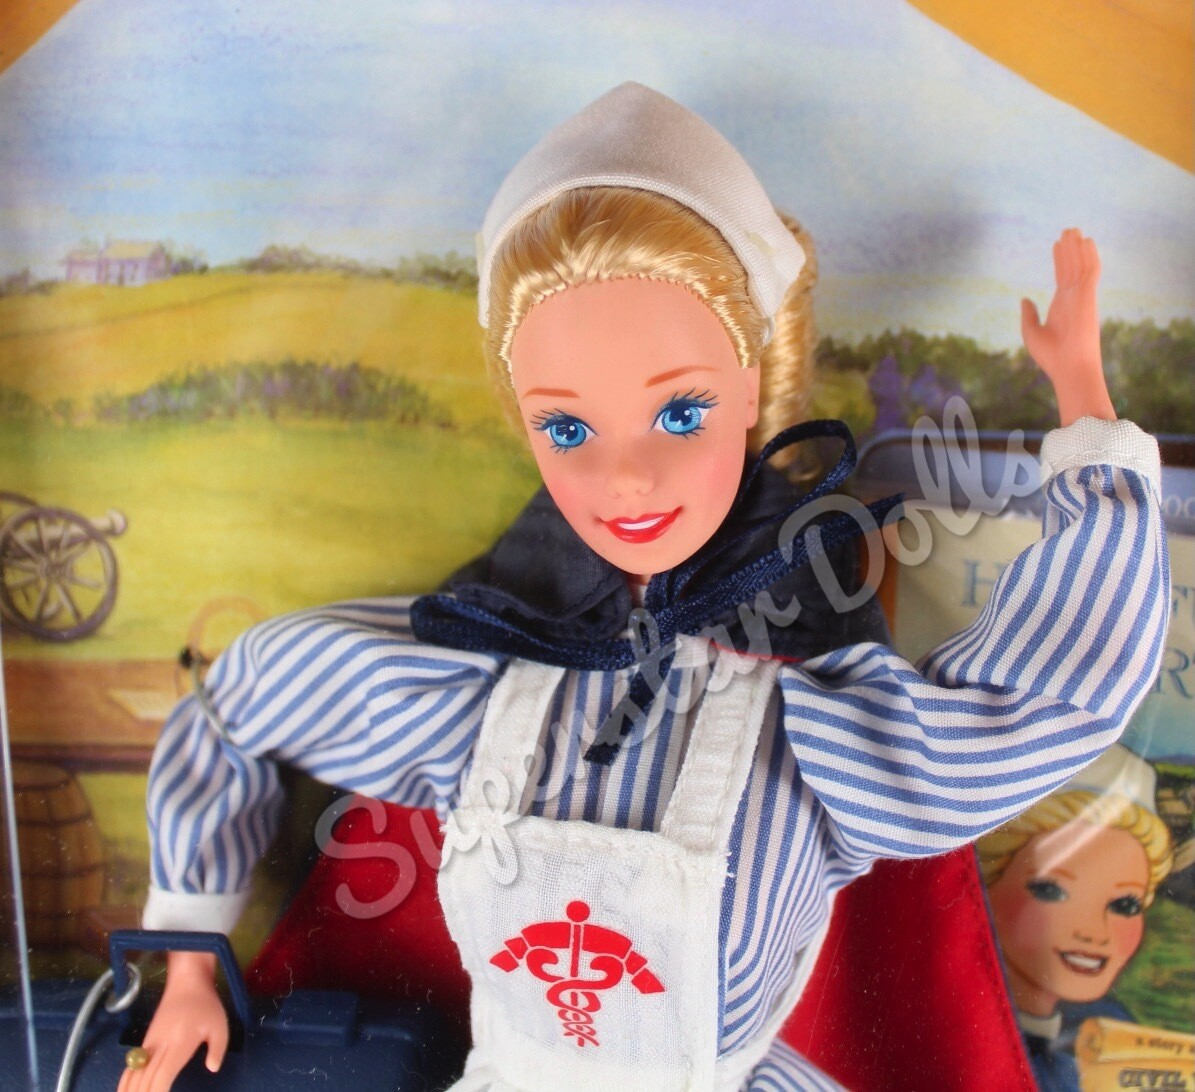 1995 Collector Edition: Civil War Nurse Barbie Doll from the American Stories Collection